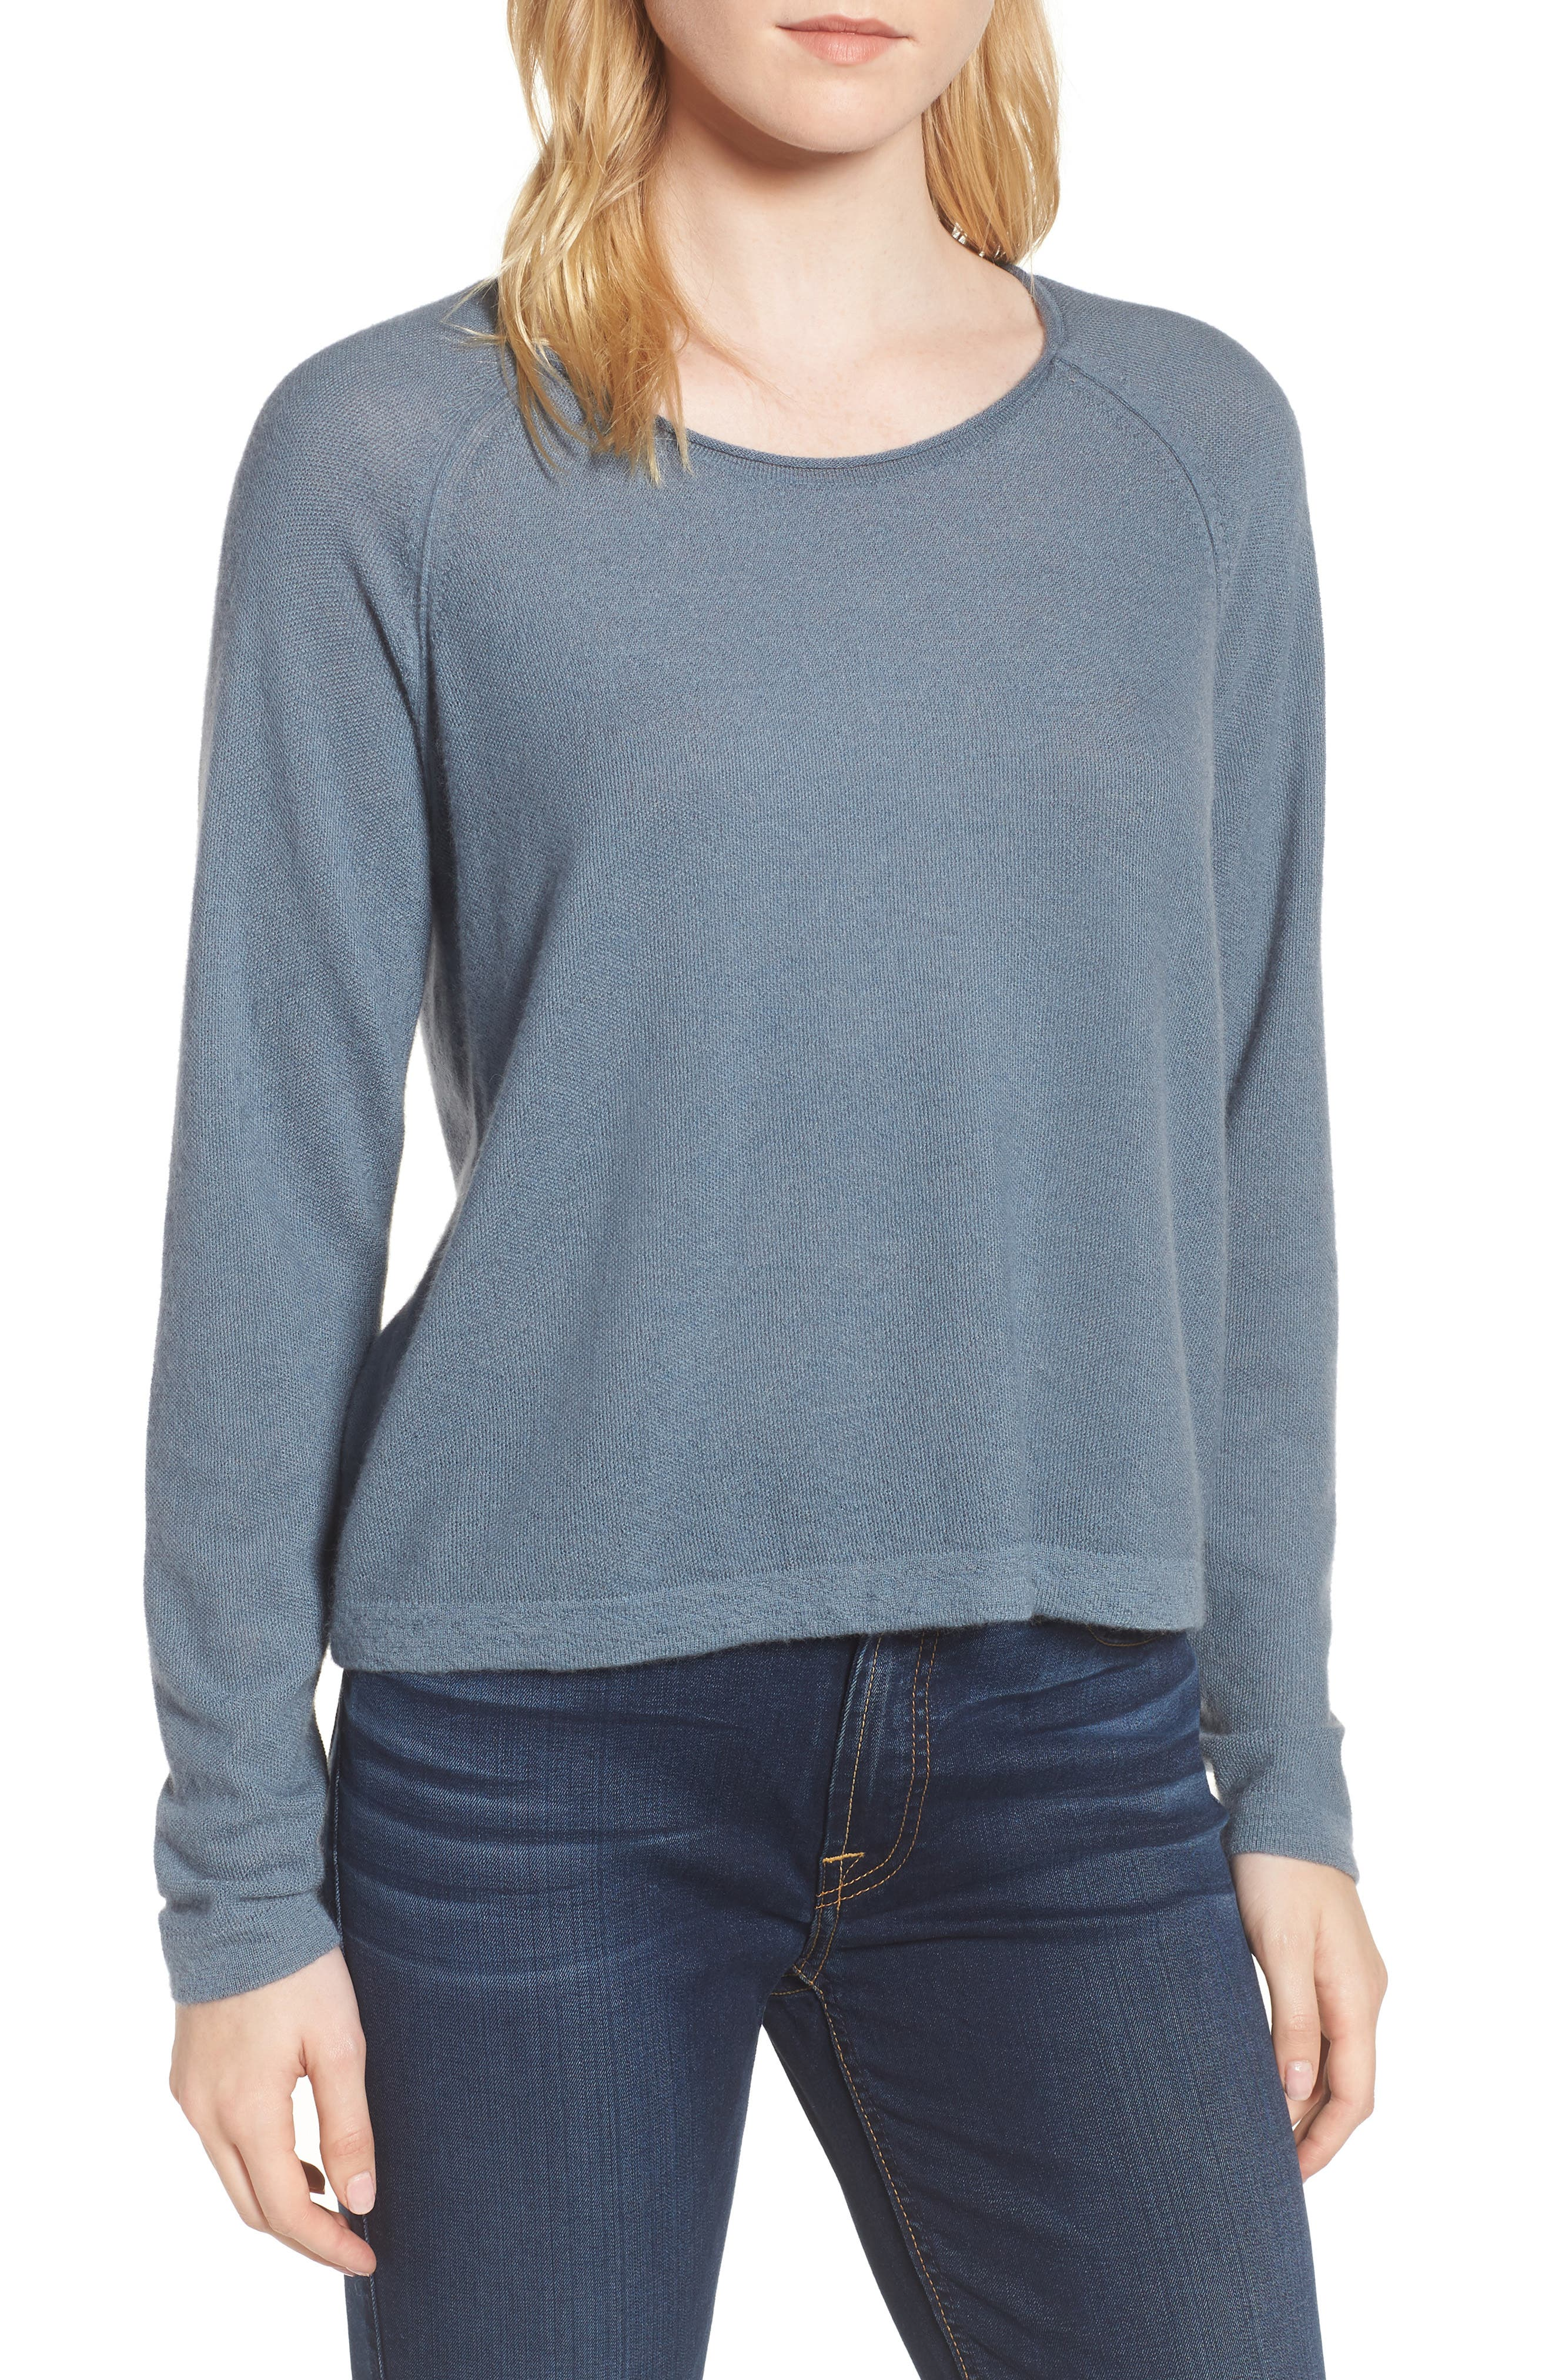 Cashmere Sweater,                             Main thumbnail 1, color,                             Heather Cruise